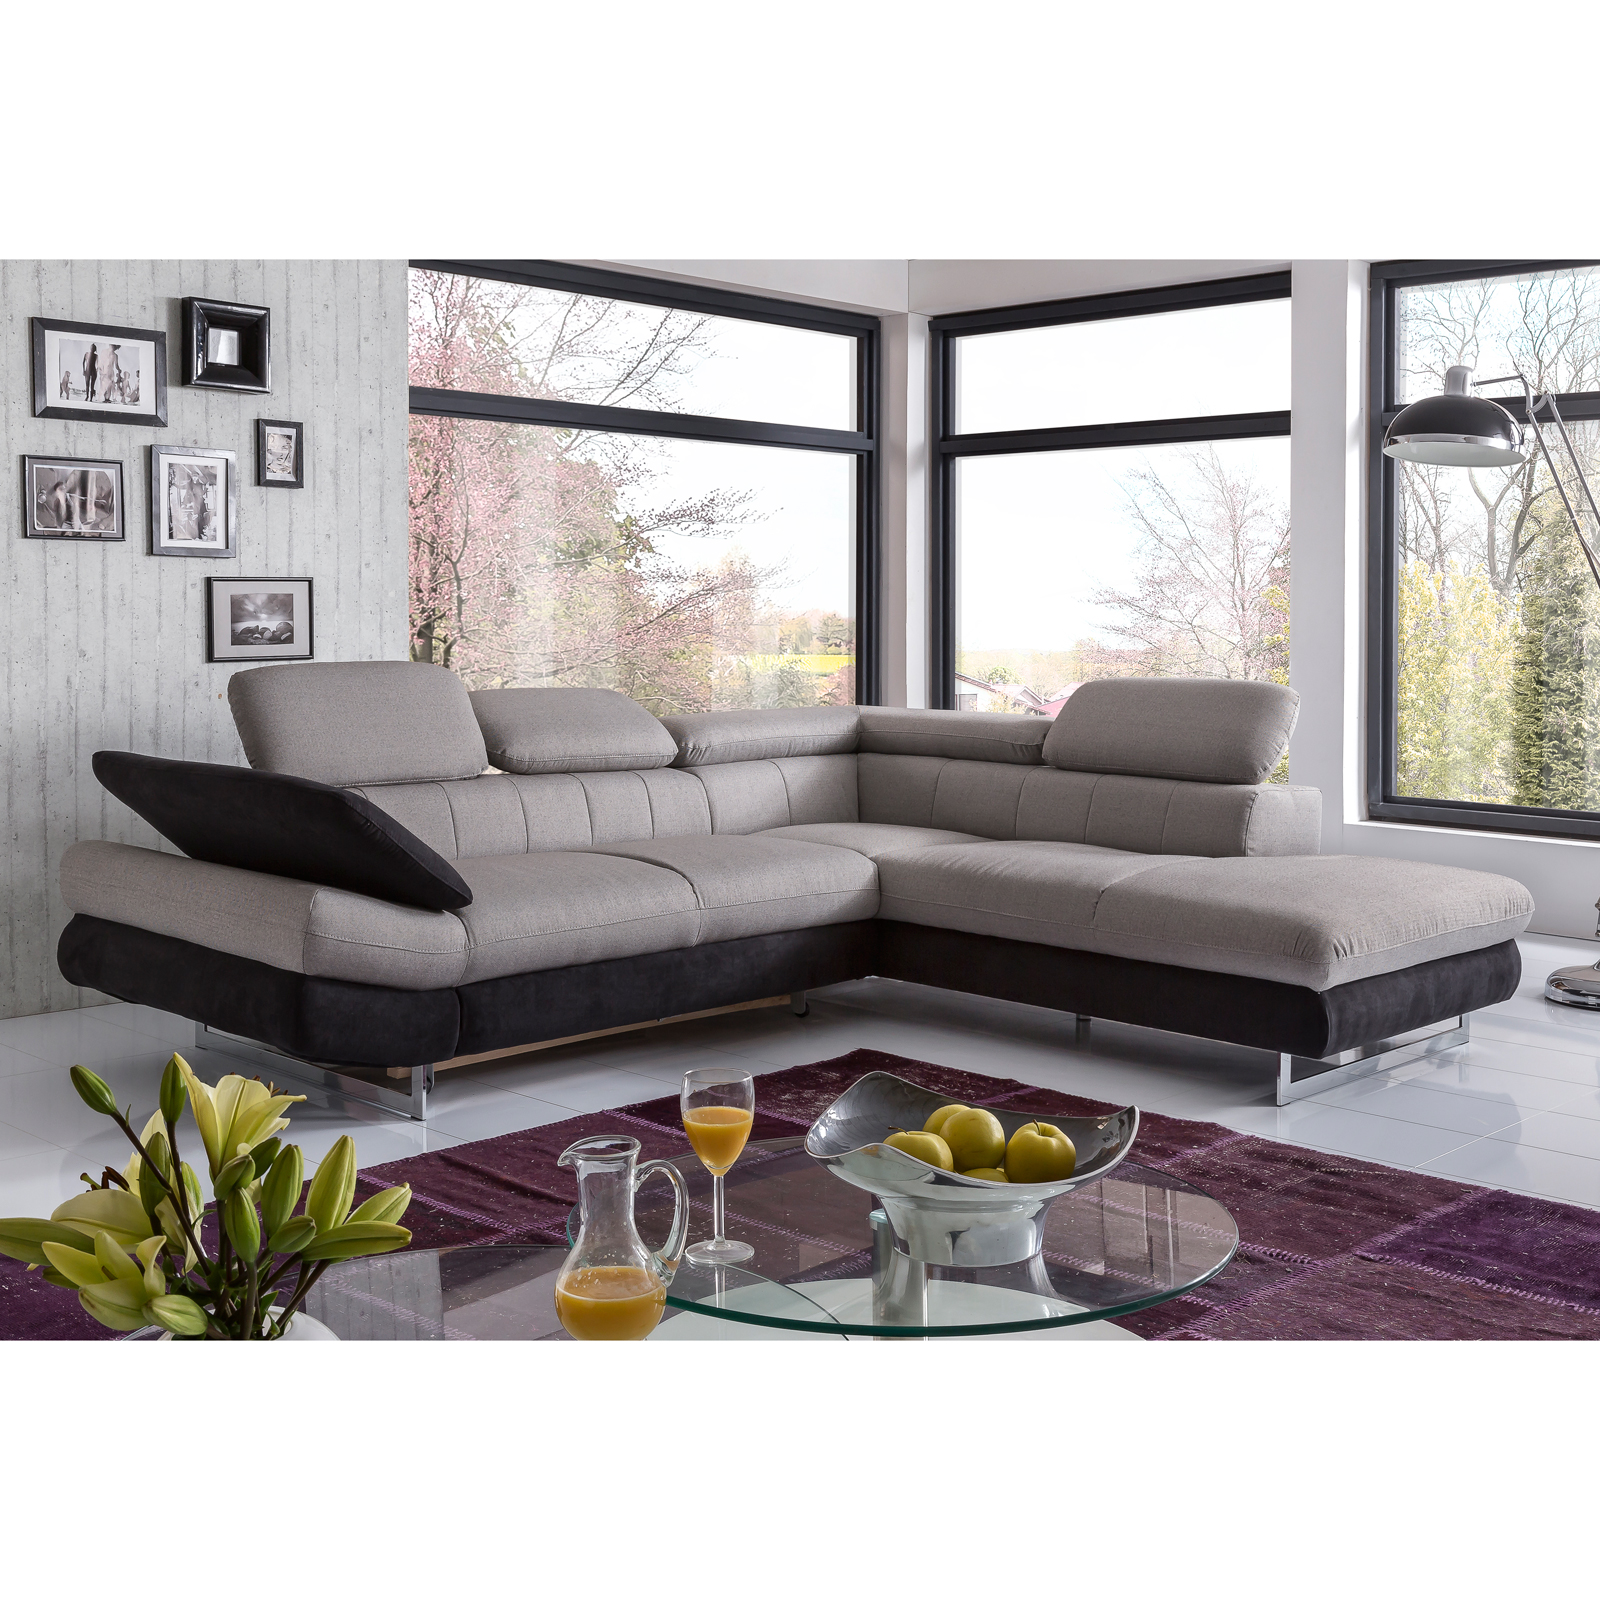 ecksofa solution sofa wohnlandschaft mit farb und funktions auswahl ebay. Black Bedroom Furniture Sets. Home Design Ideas